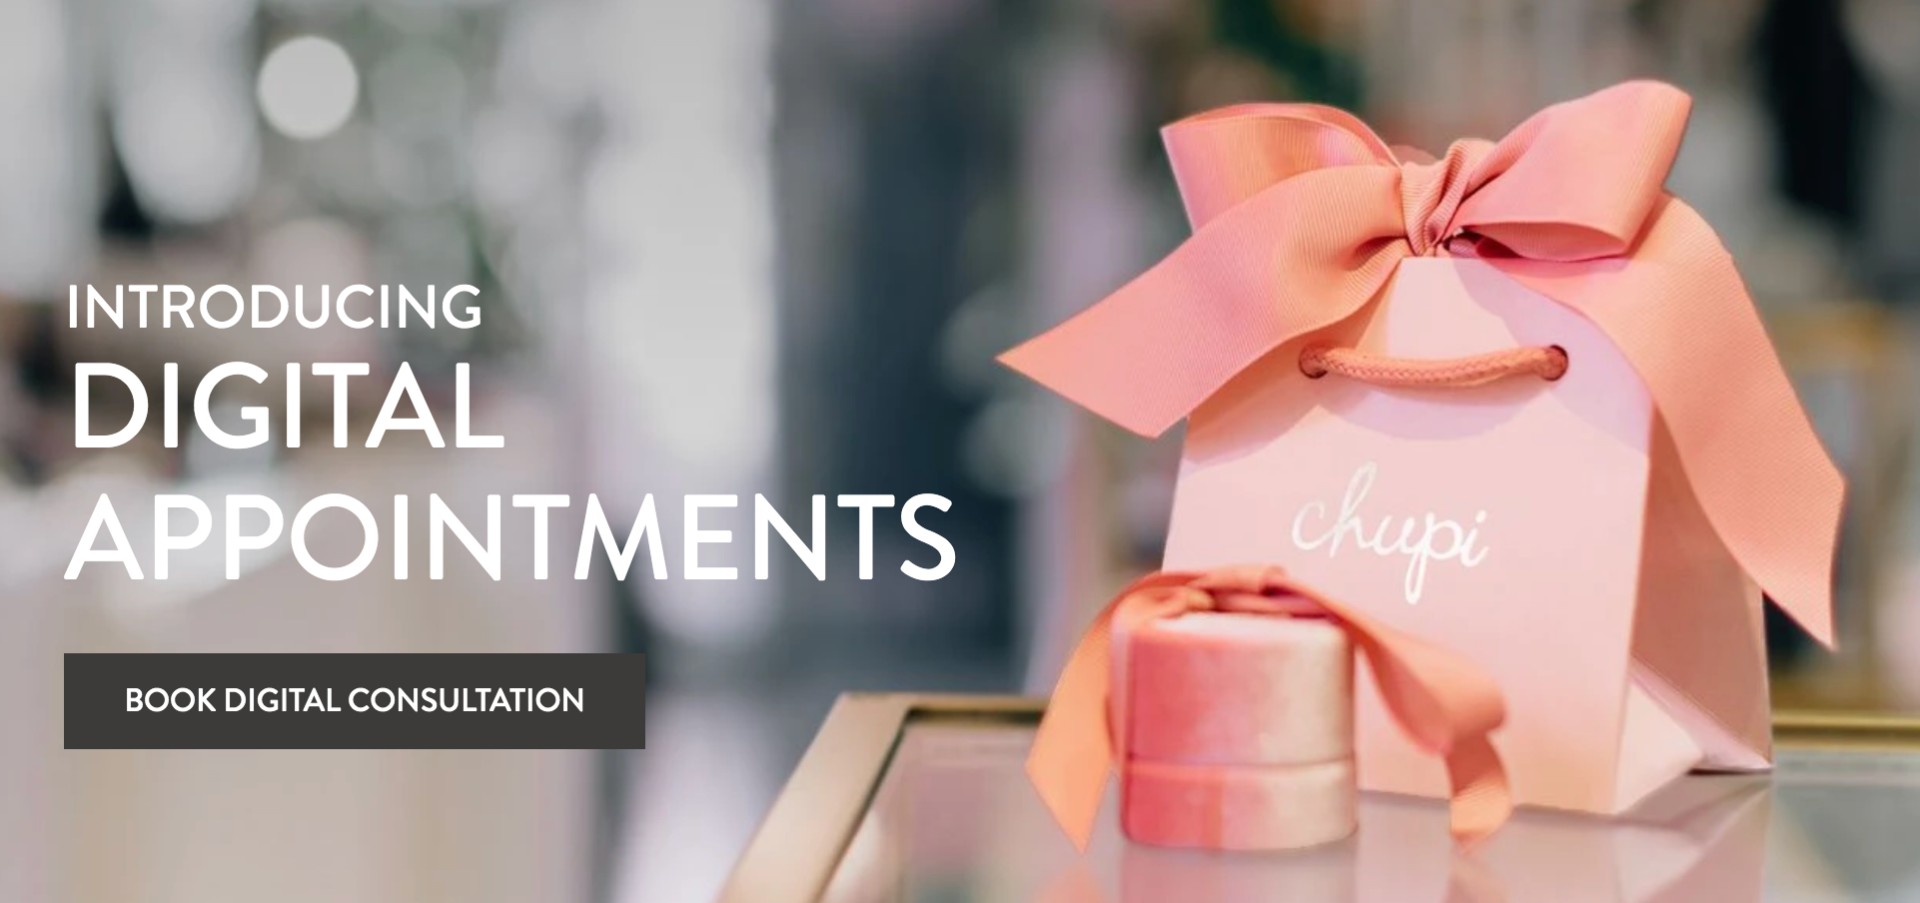 Chupi offers digital consultations so shoppers can still pick the right jewelry during COVID-19